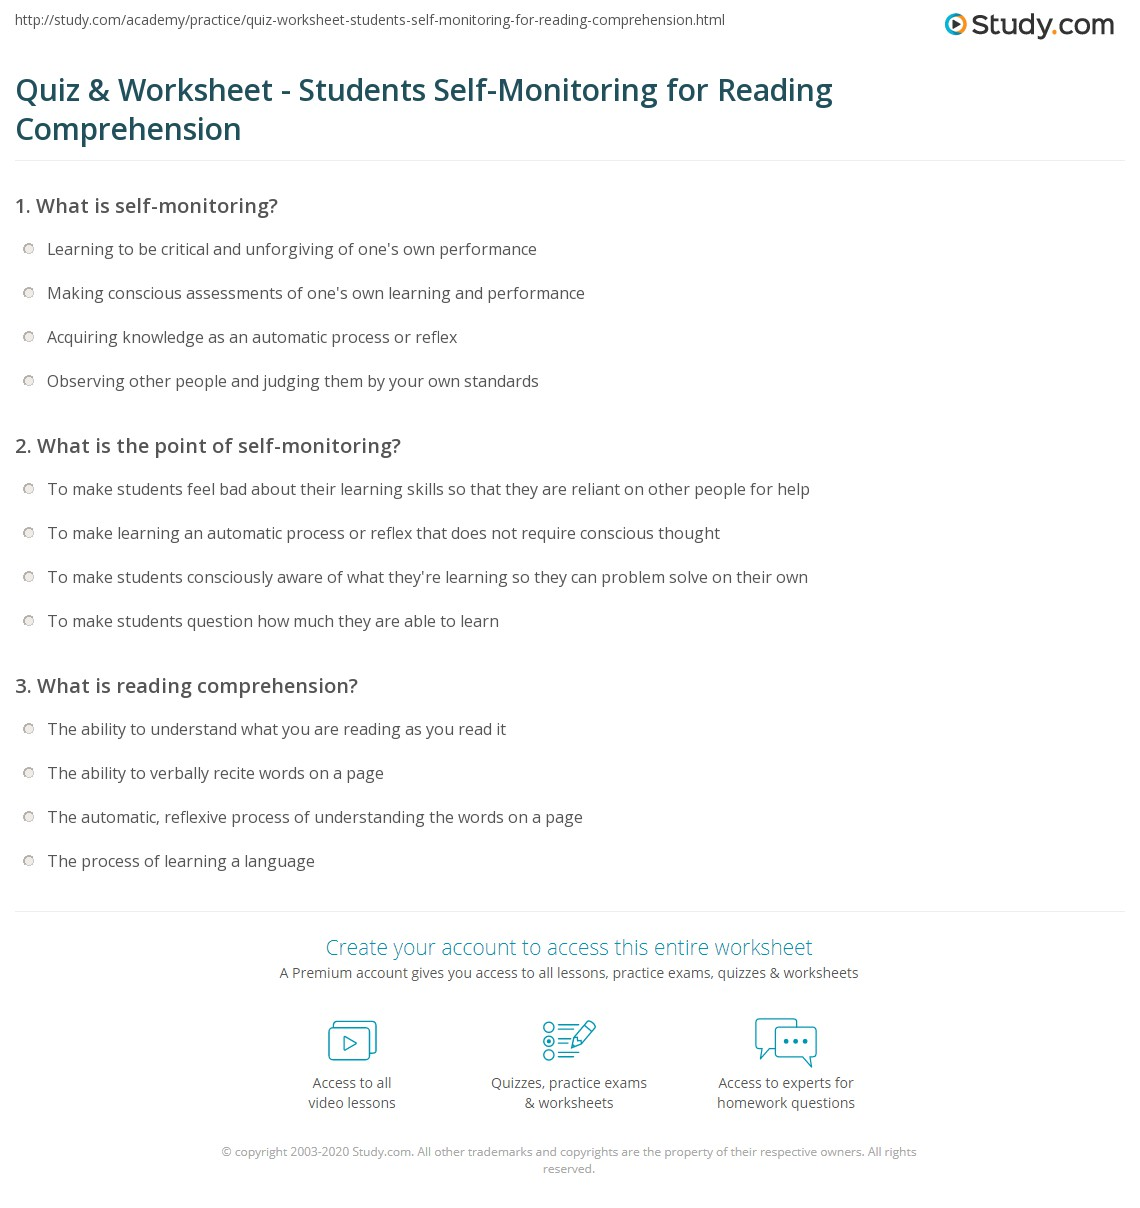 Printables College Reading Comprehension Worksheets reading comprehension exam for college prehension math worksheet quiz students self monitoring college